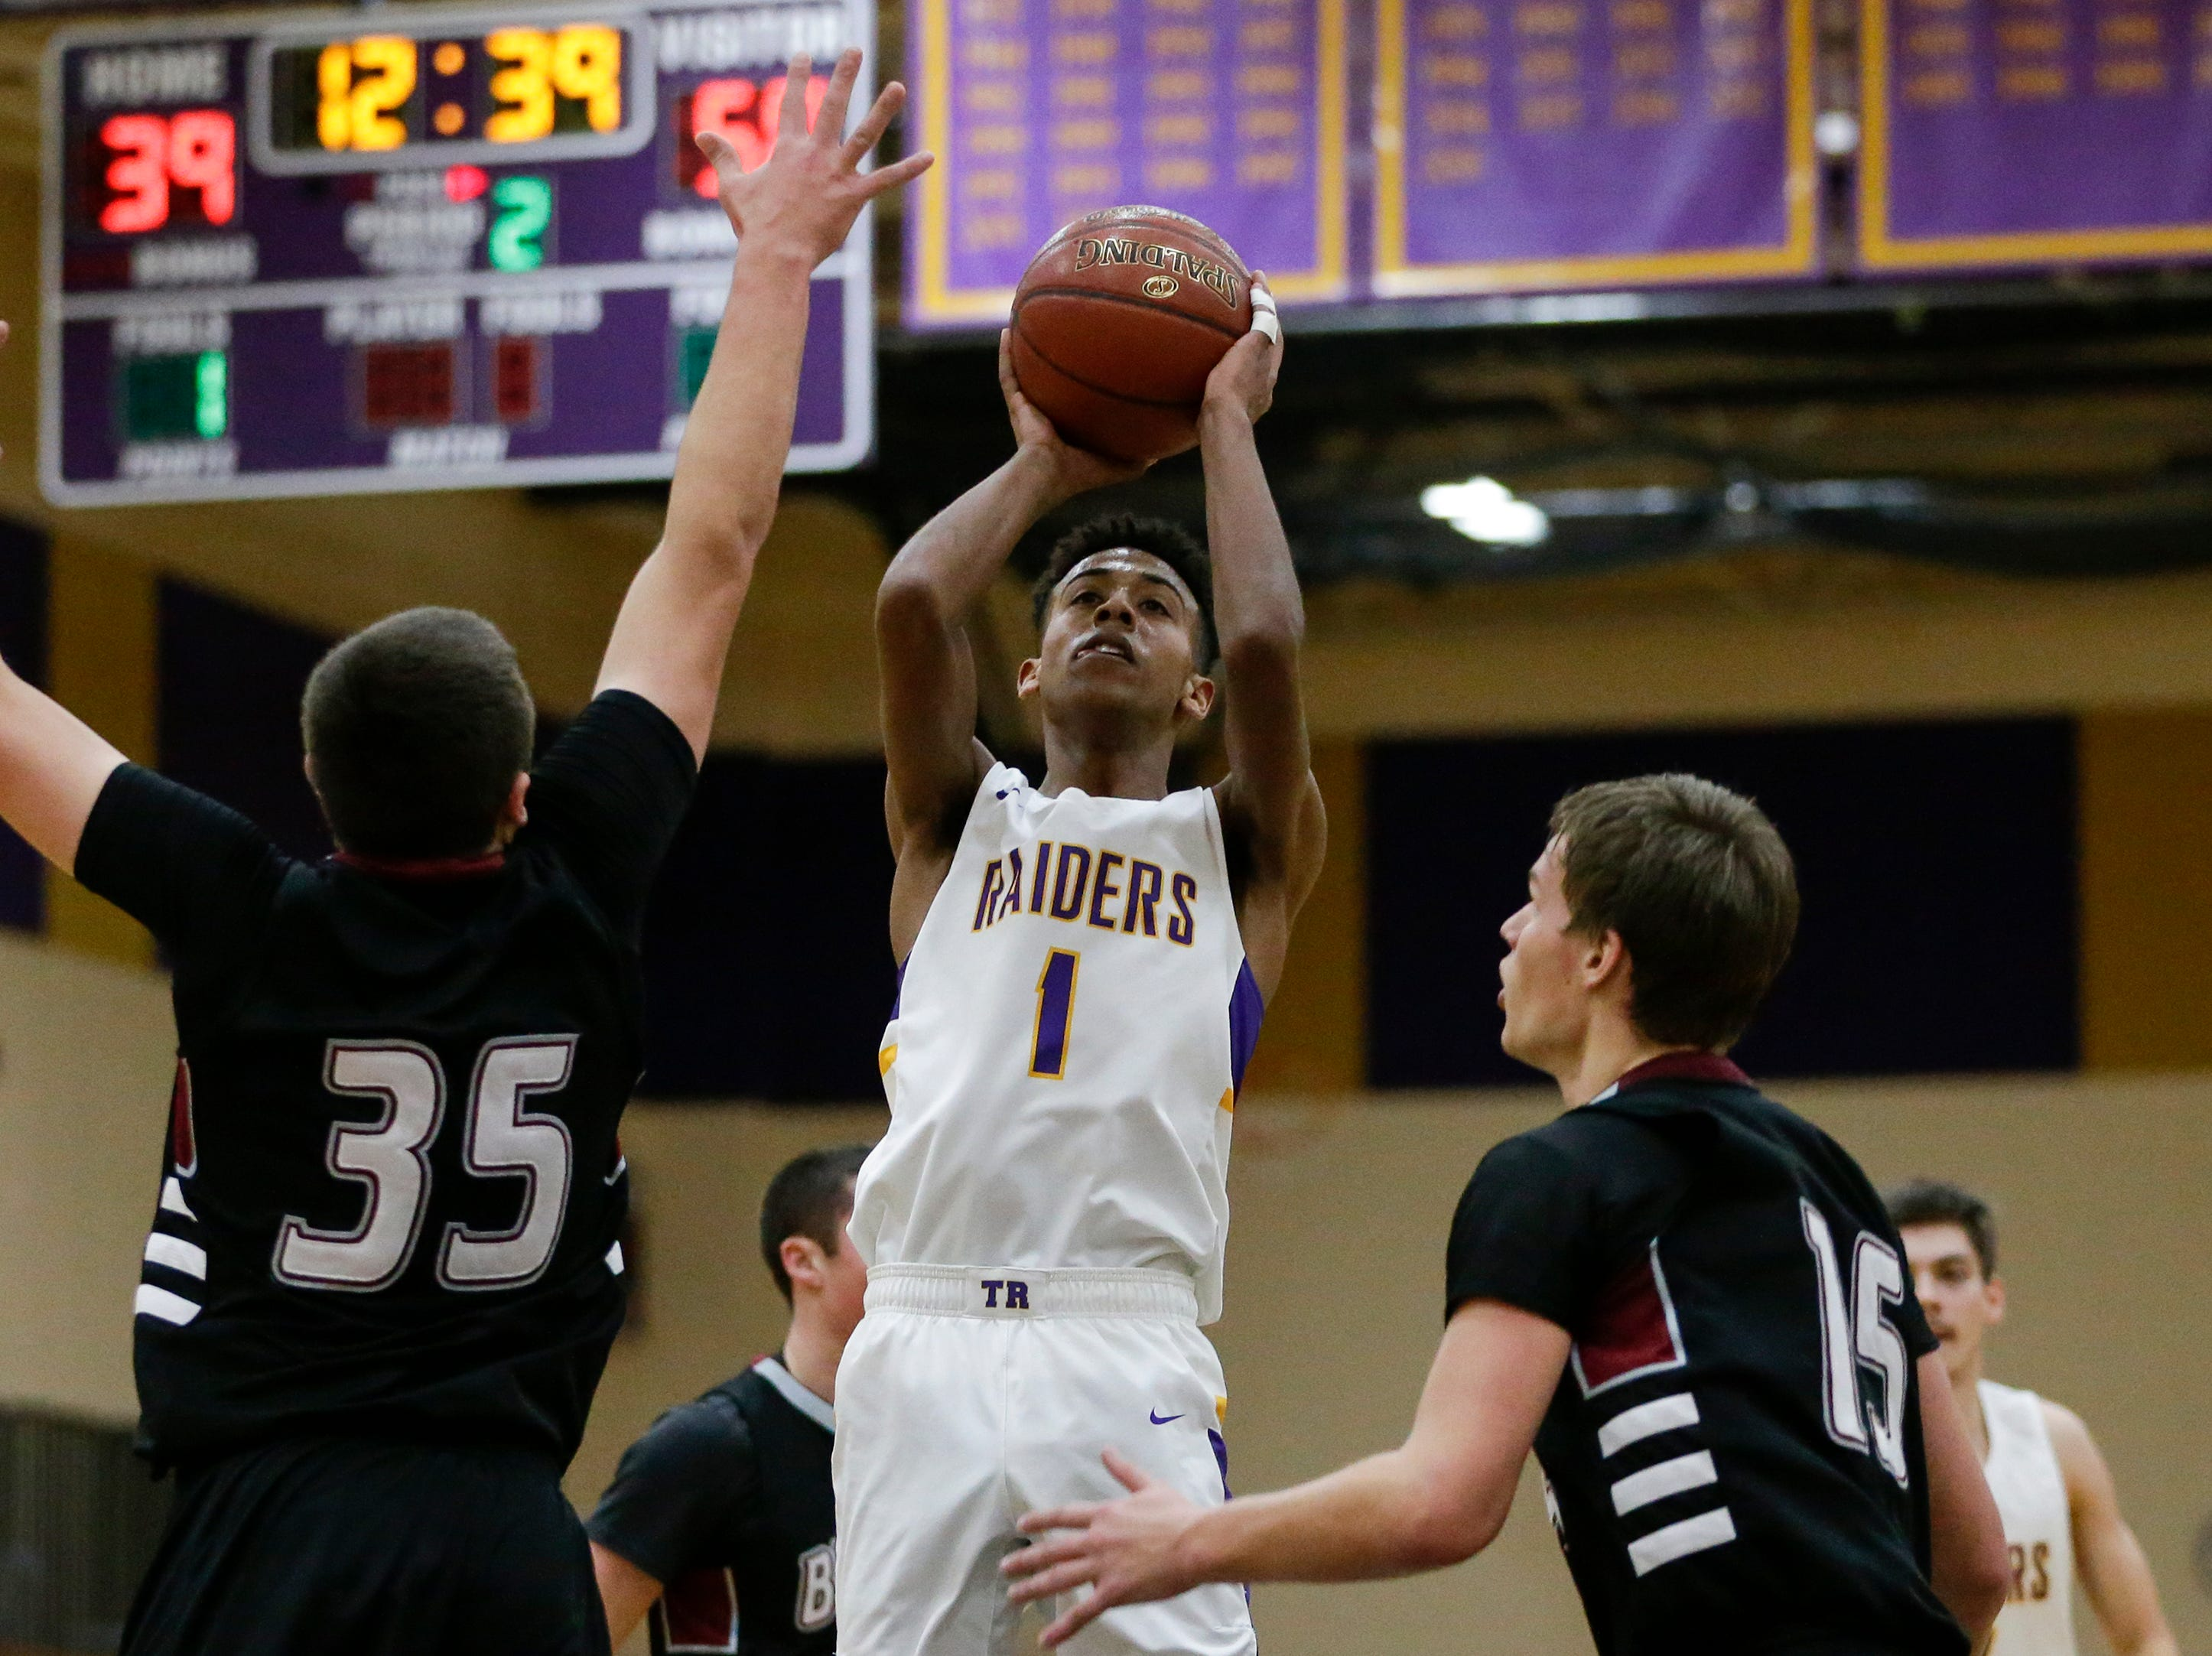 Two Rivers' Isaac Coronado shoots against Green Bay NEW Lutheran at Two Rivers High School Tuesday, January 8, 2019, in Two Rivers, Wis. Joshua Clark/USA TODAY NETWORK-Wisconsin